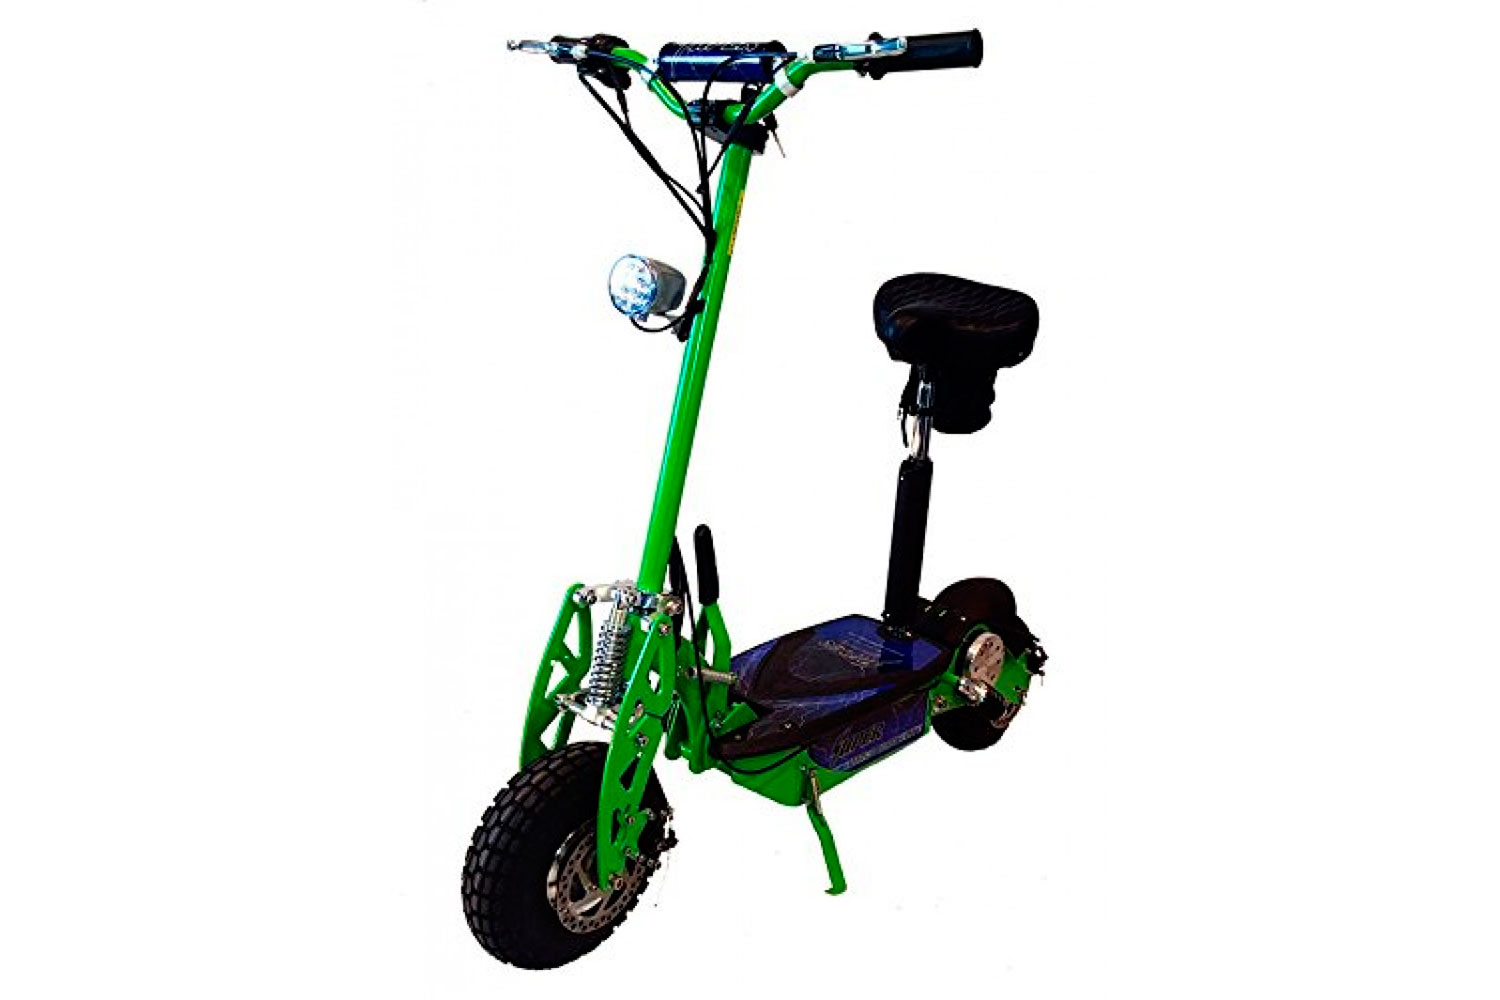 Super 36v Turbo 1000 Elite Electric Scooter Gearscoot